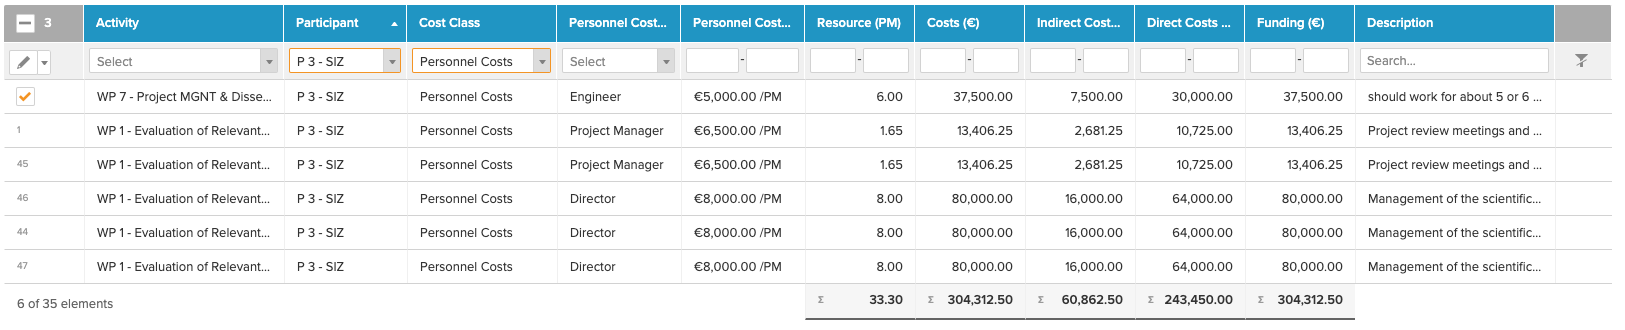 Personnel-costs-calculation_3